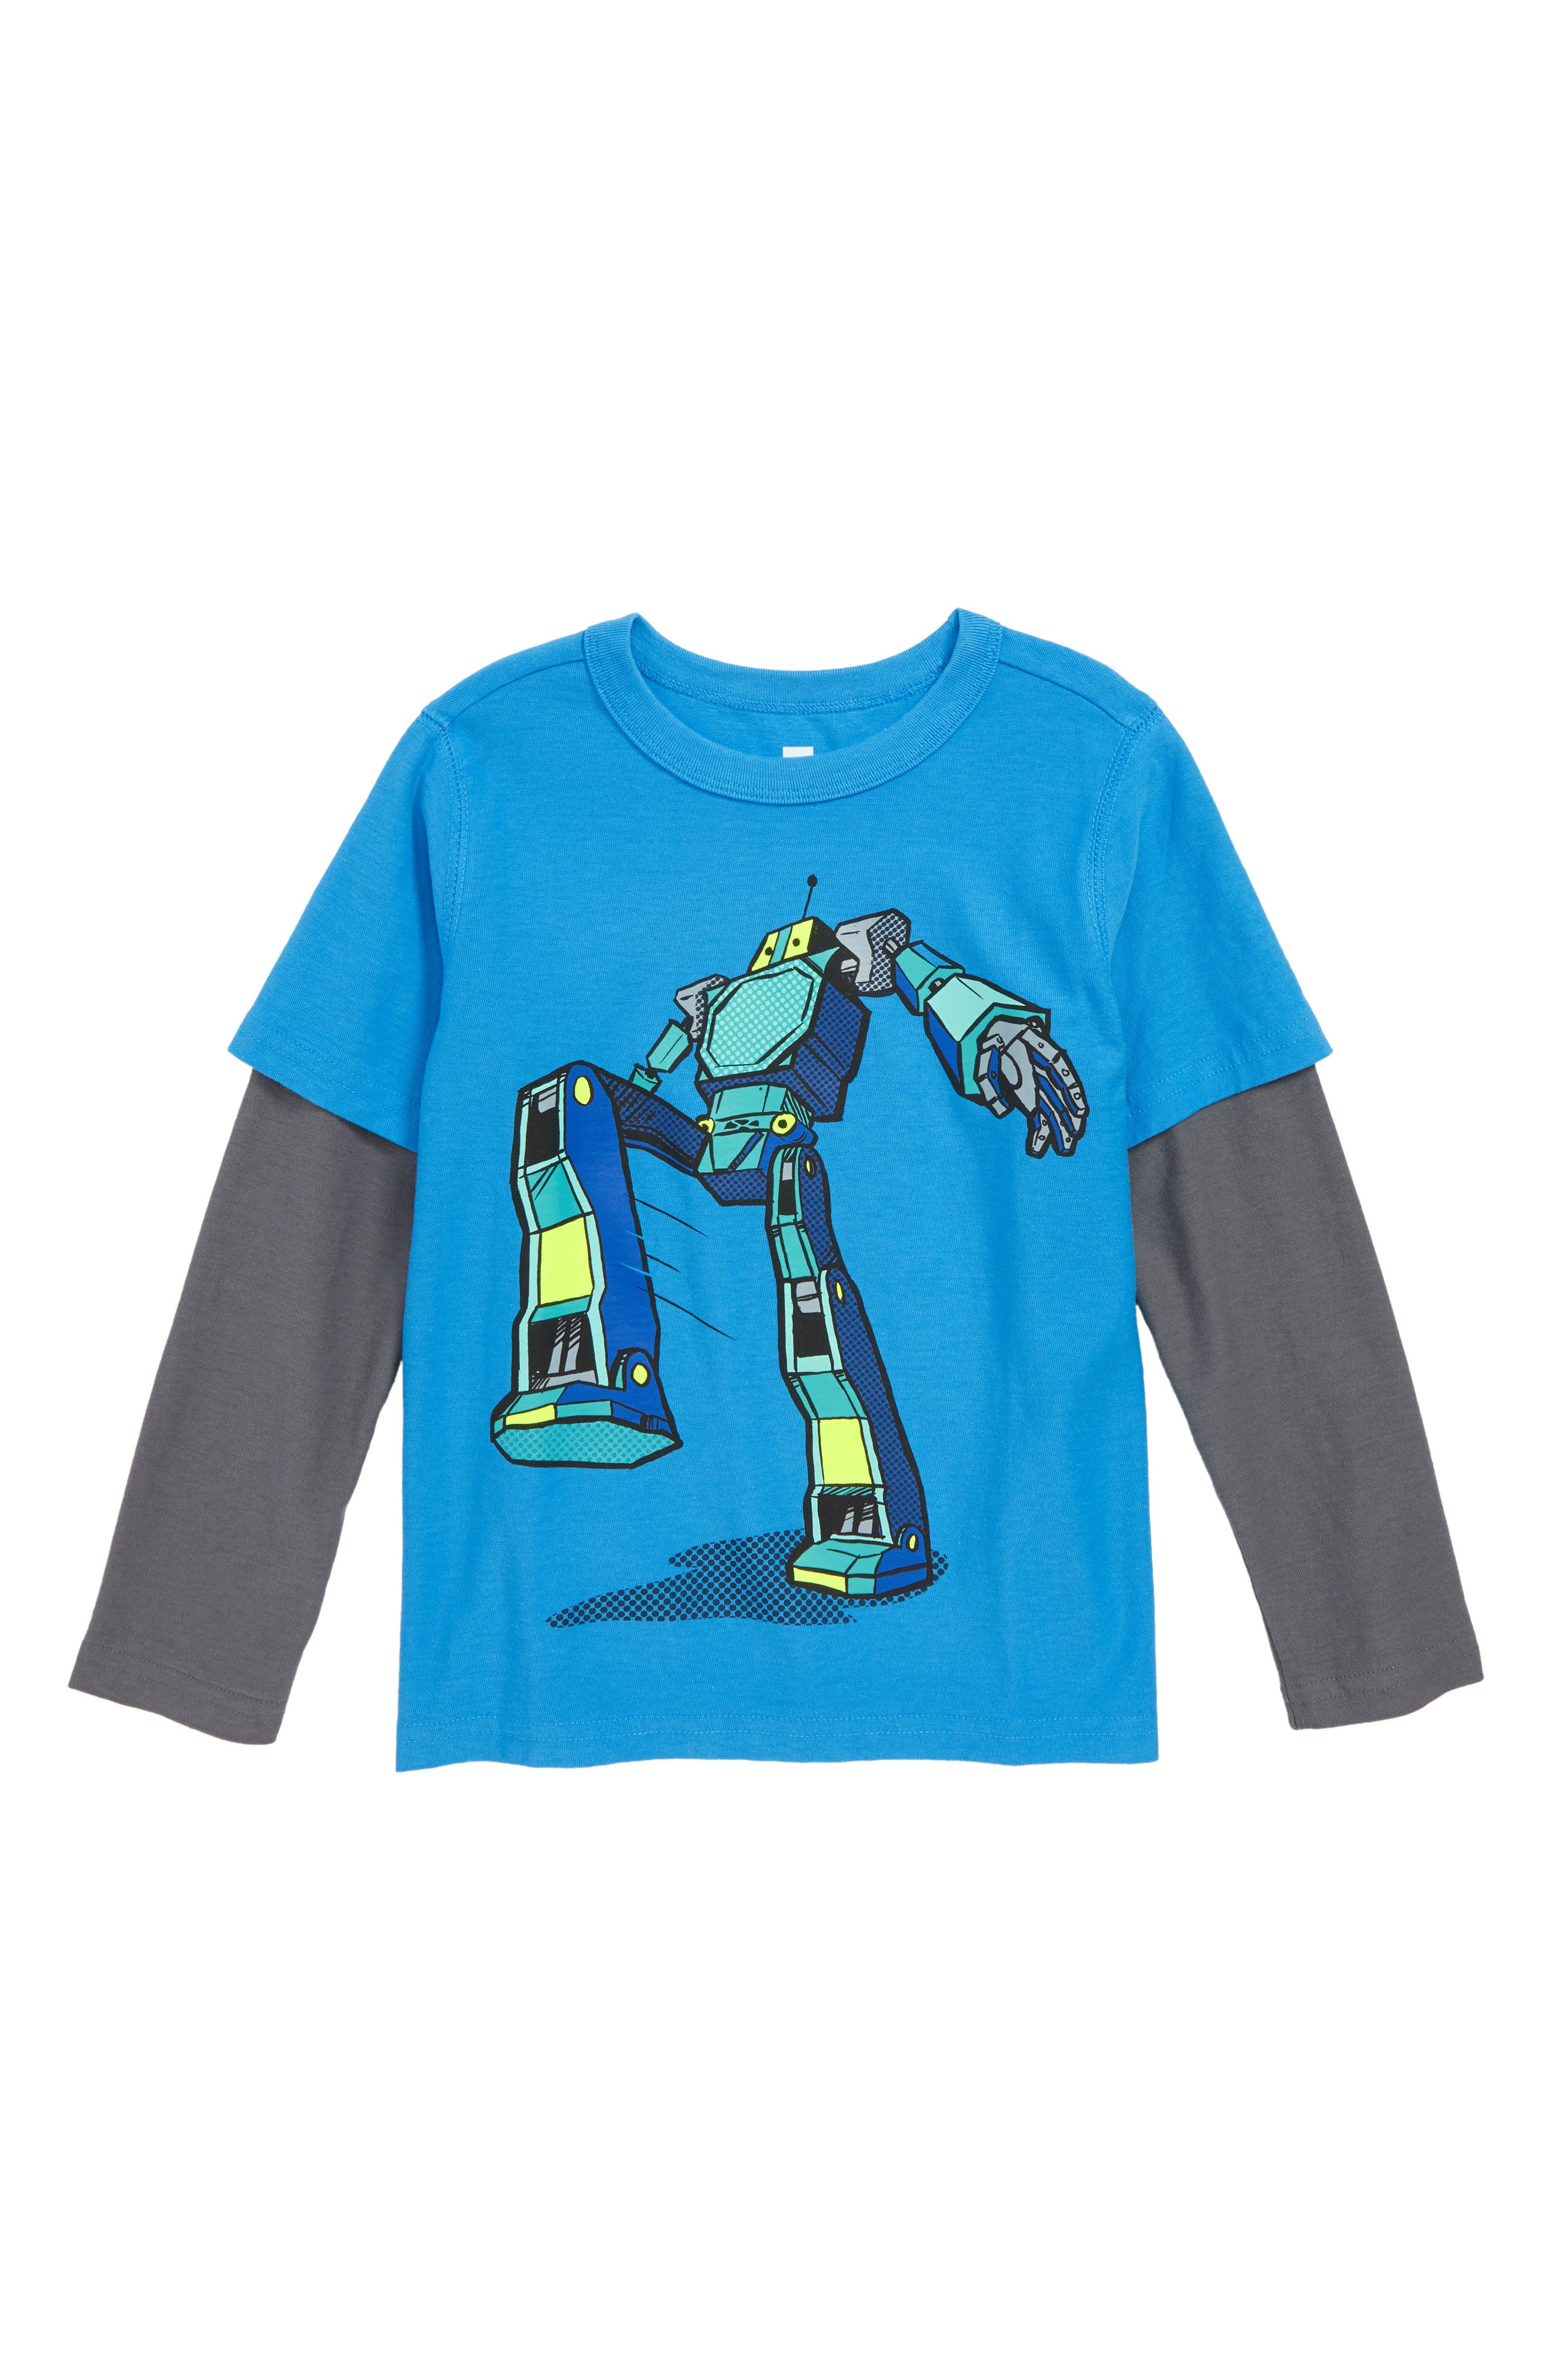 Robot Layer T-Shirt,                             Main thumbnail 1, color,                             477